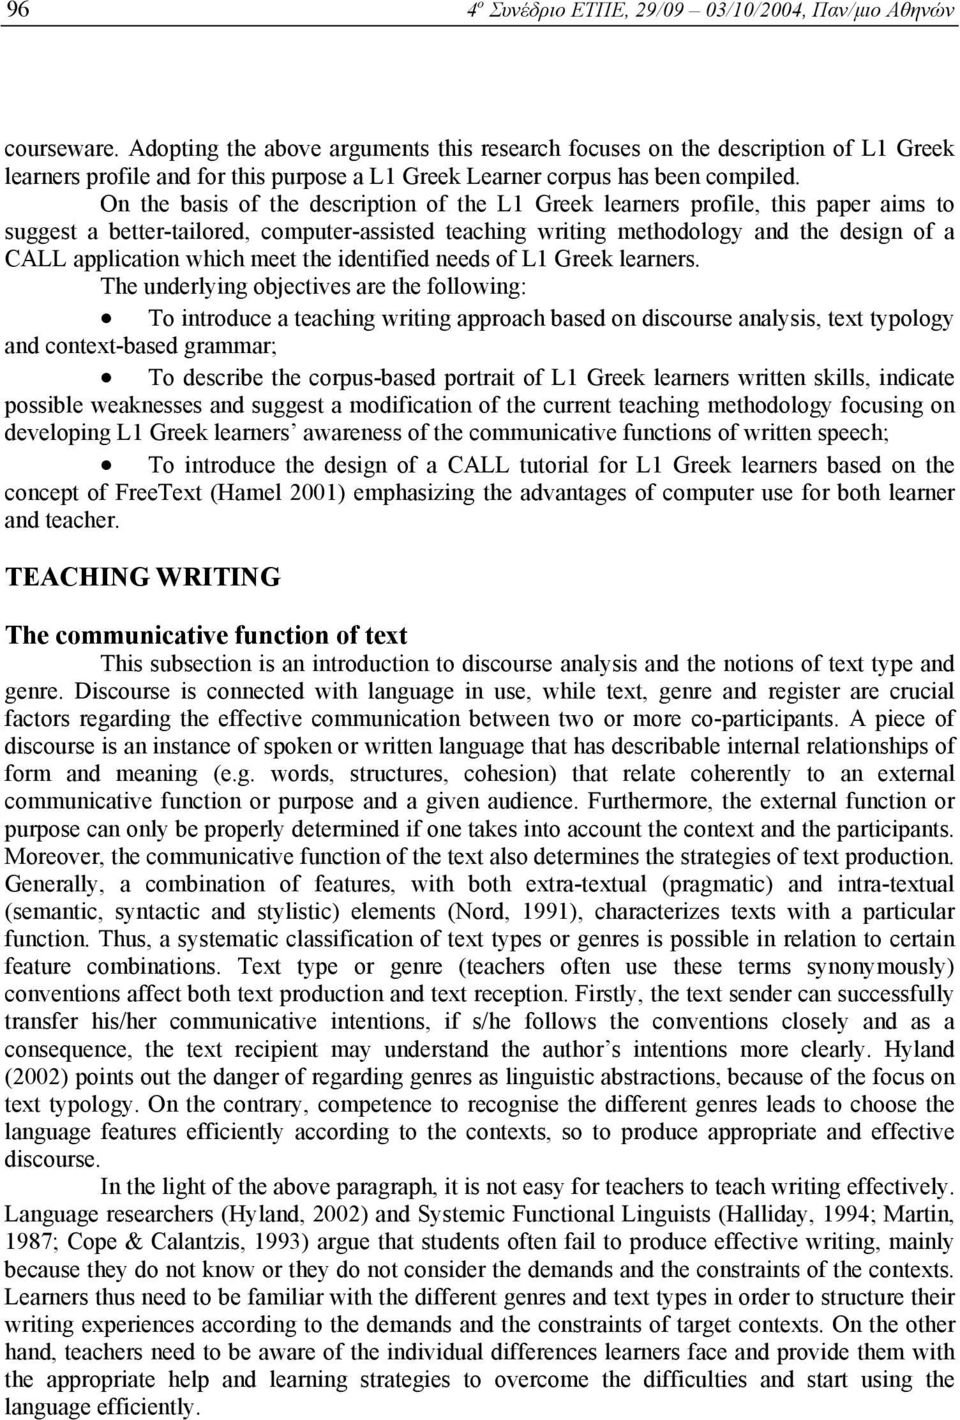 On the basis of the description of the L1 Greek learners profile, this paper aims to suggest a better-tailored, computer-assisted teaching writing methodology and the design of a CALL application